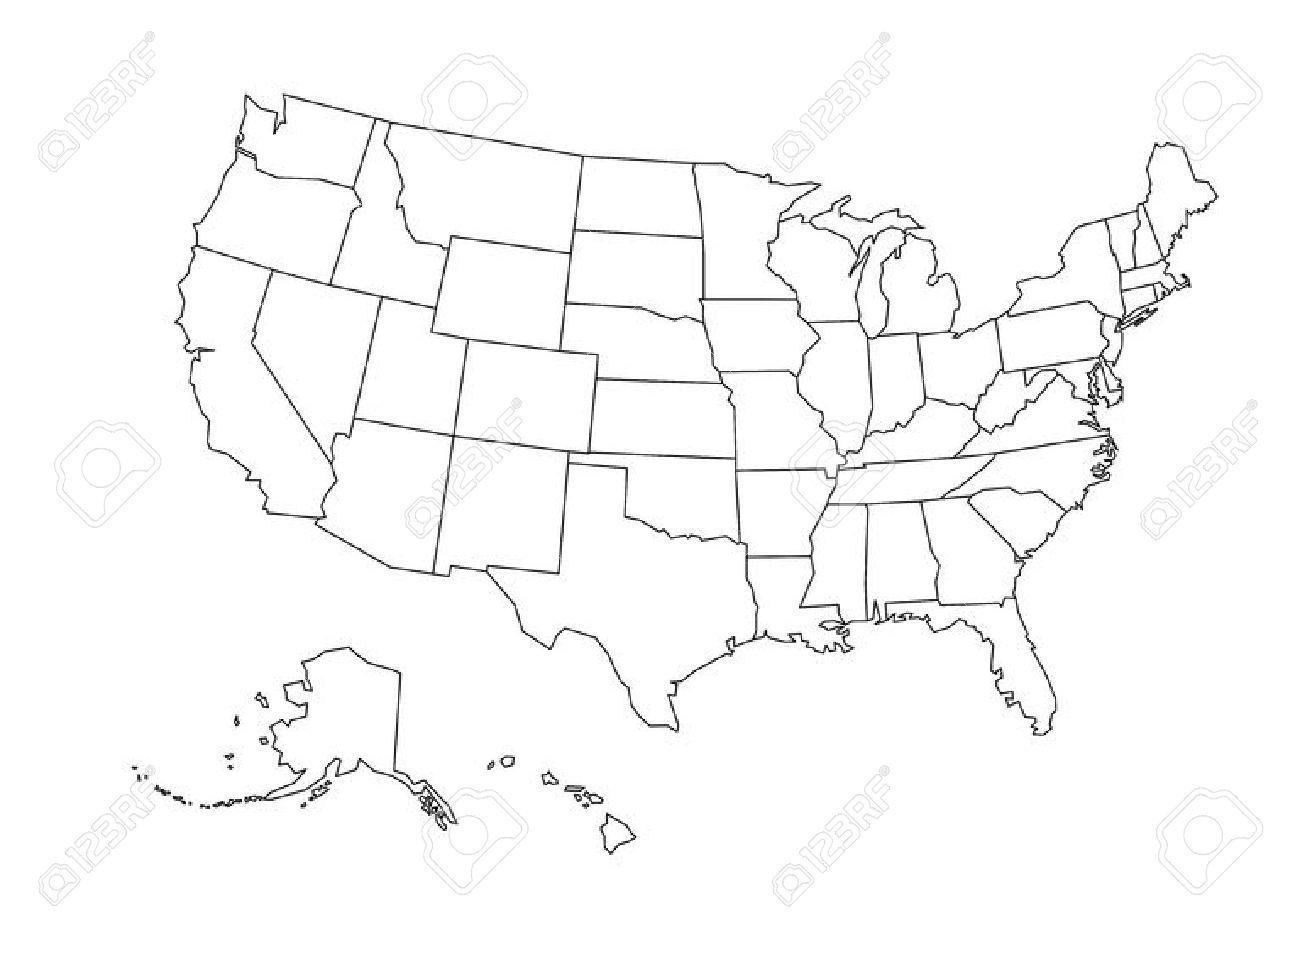 United states simple outline clipart png freeuse Blank Outline Map Of United States Of America. Simplified Vector ... png freeuse